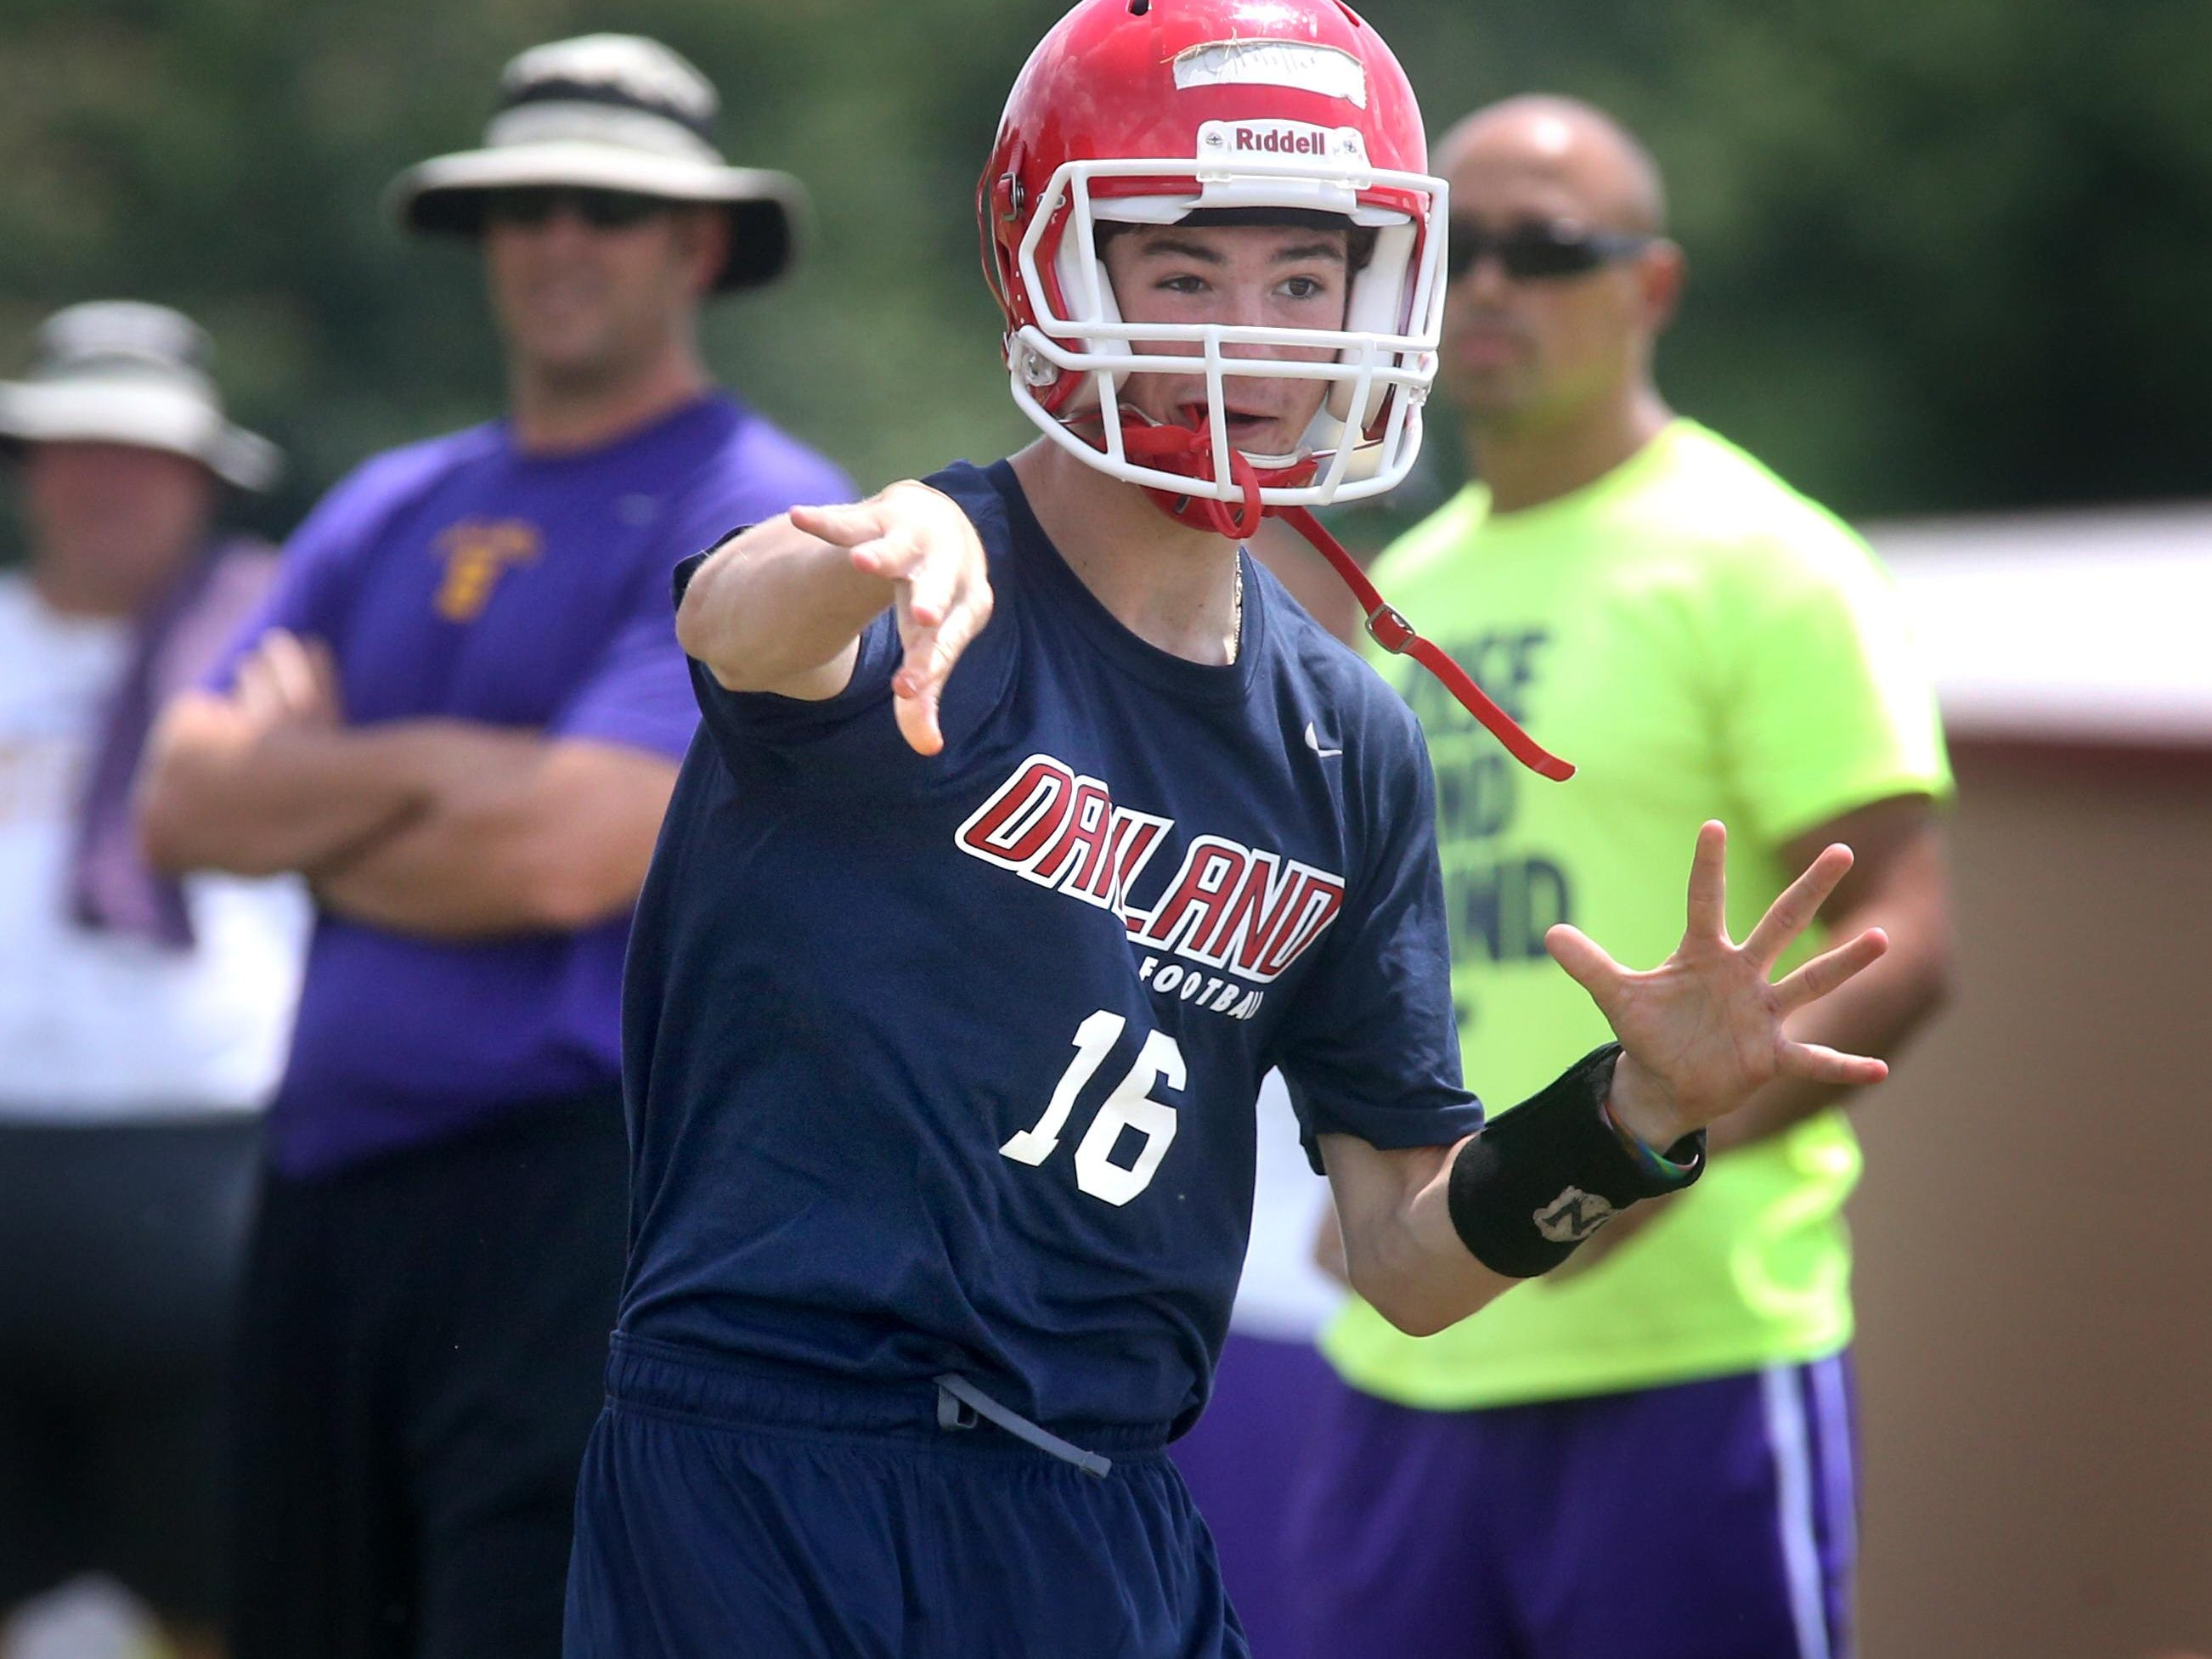 Oakland's quarterback Cody Miller is the likely No. 1 for the Patriots entering fall camp.